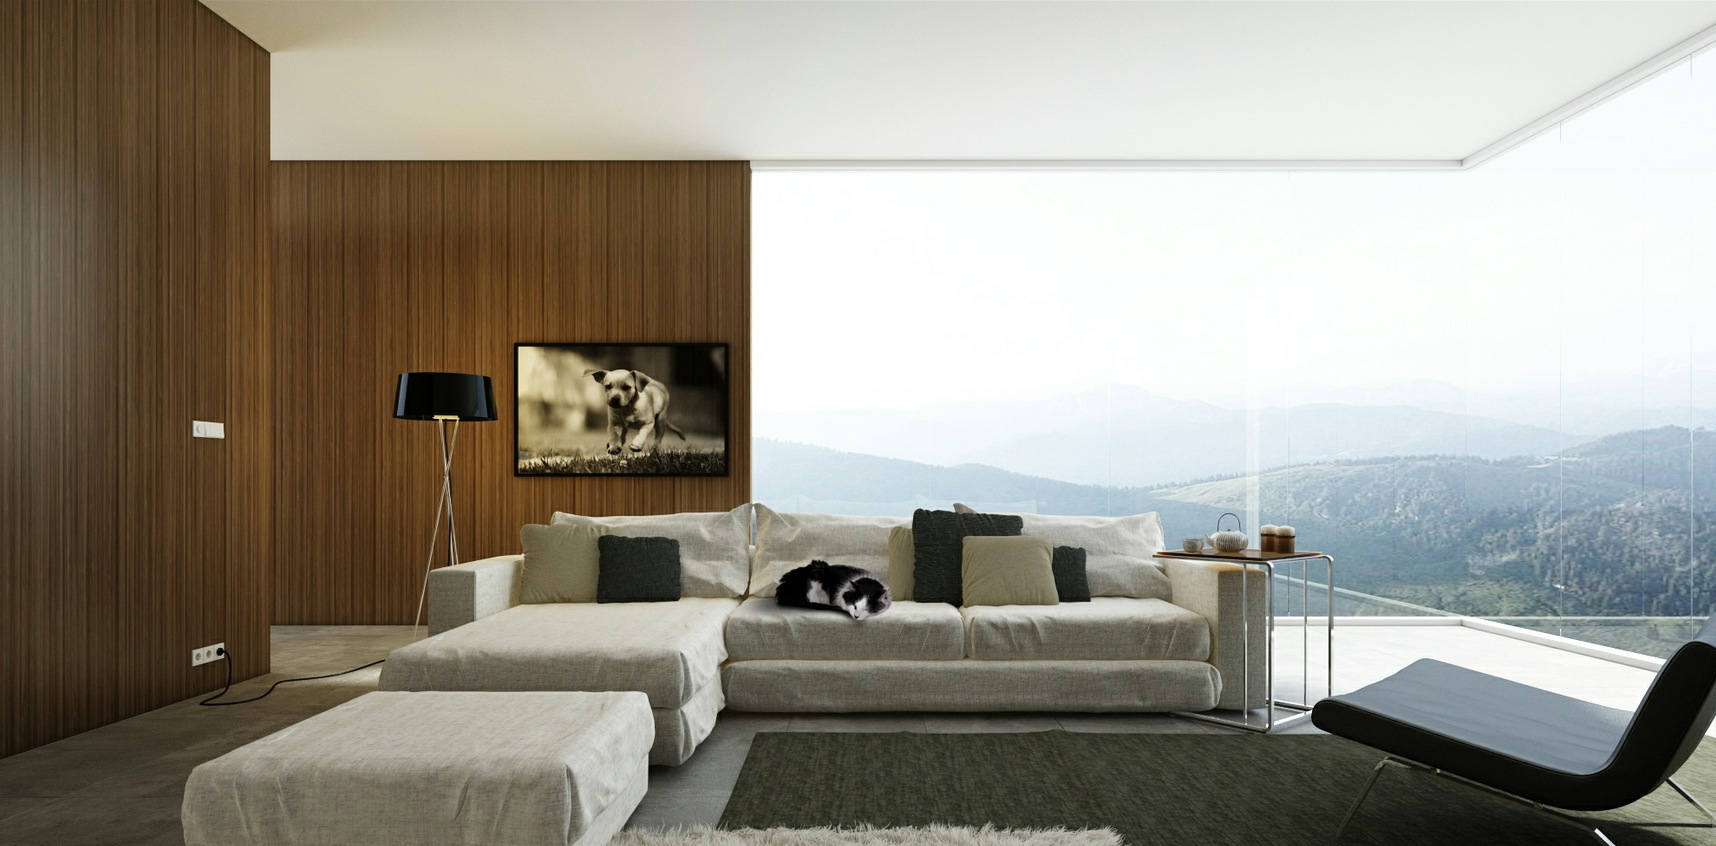 Living rooms with great views - In drowing room interiar design ...